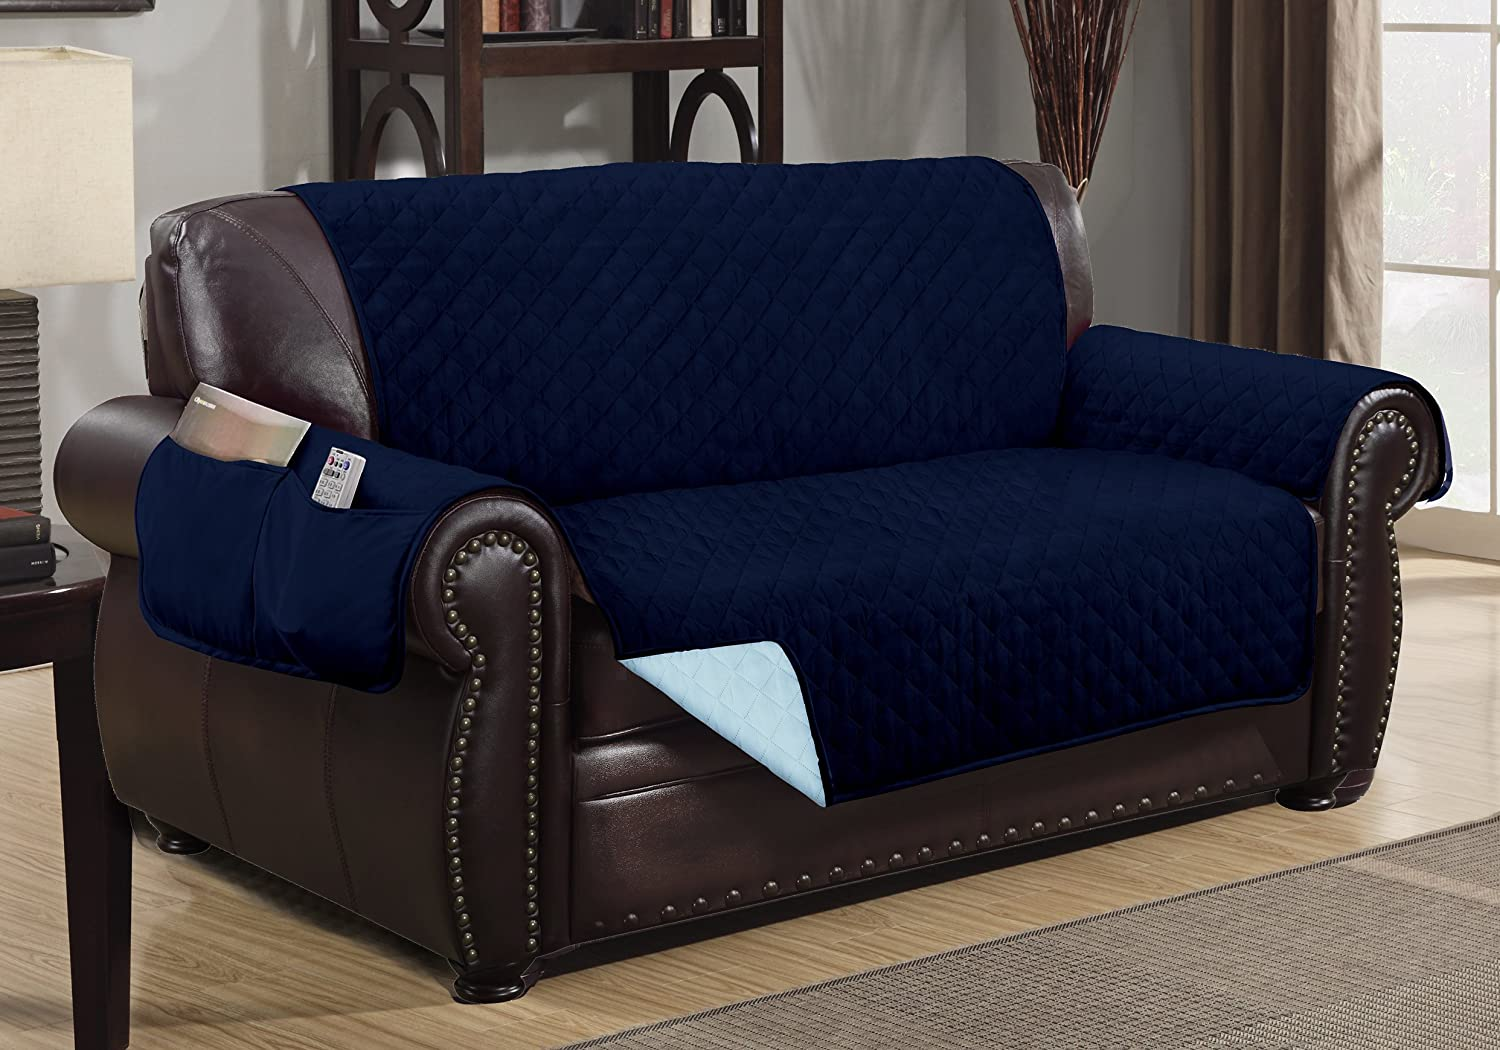 The Original DELUXE HOTEL Reversible and Waterproof Furniture Protector (Loveseat, Navy Blue / Light Blue)